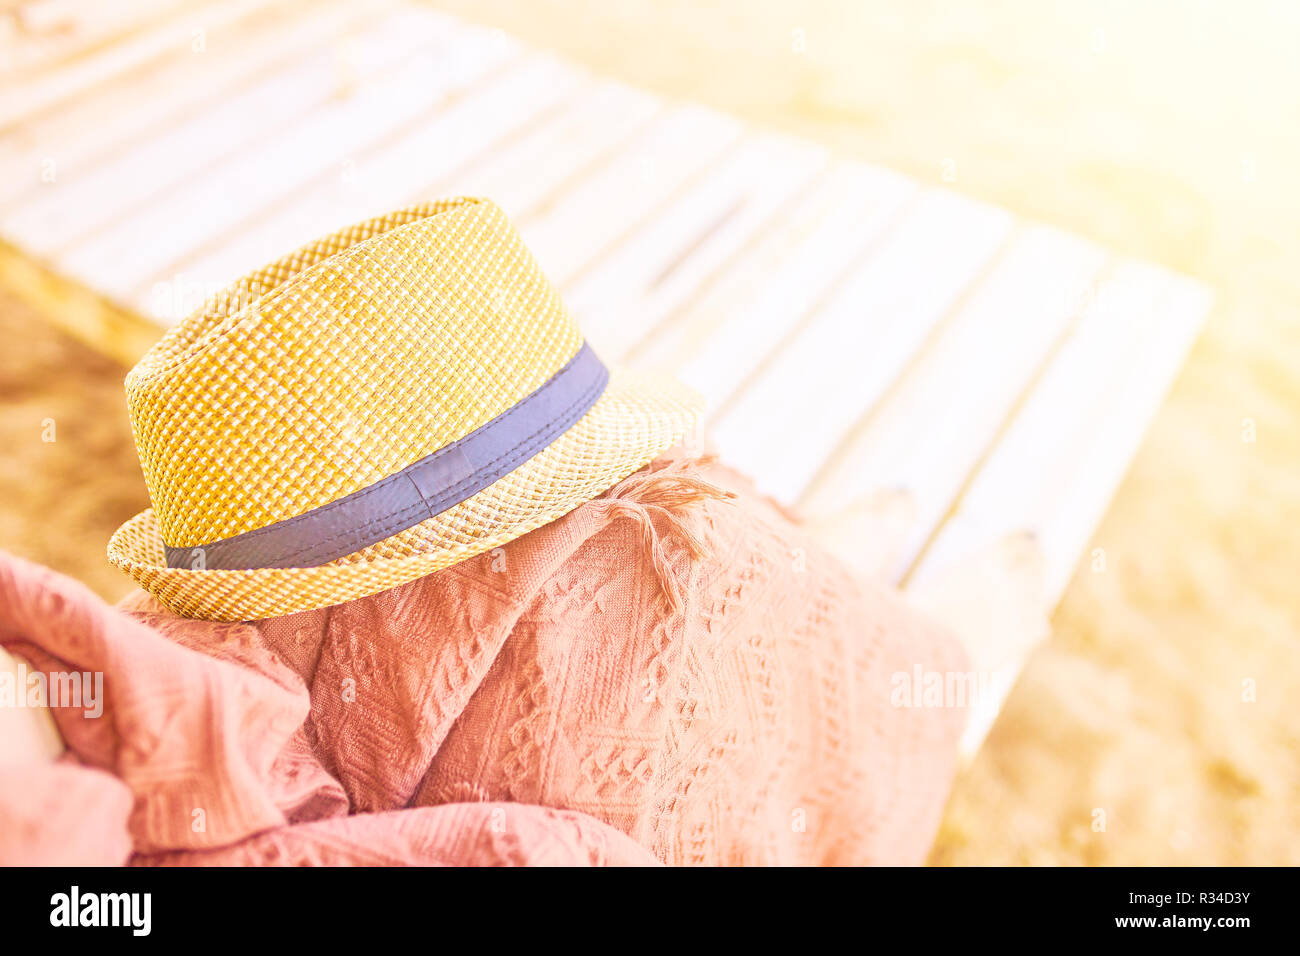 Person lying on a sunbed with a blanket and a beach hat. Straw hat on a hot day off. - Stock Image